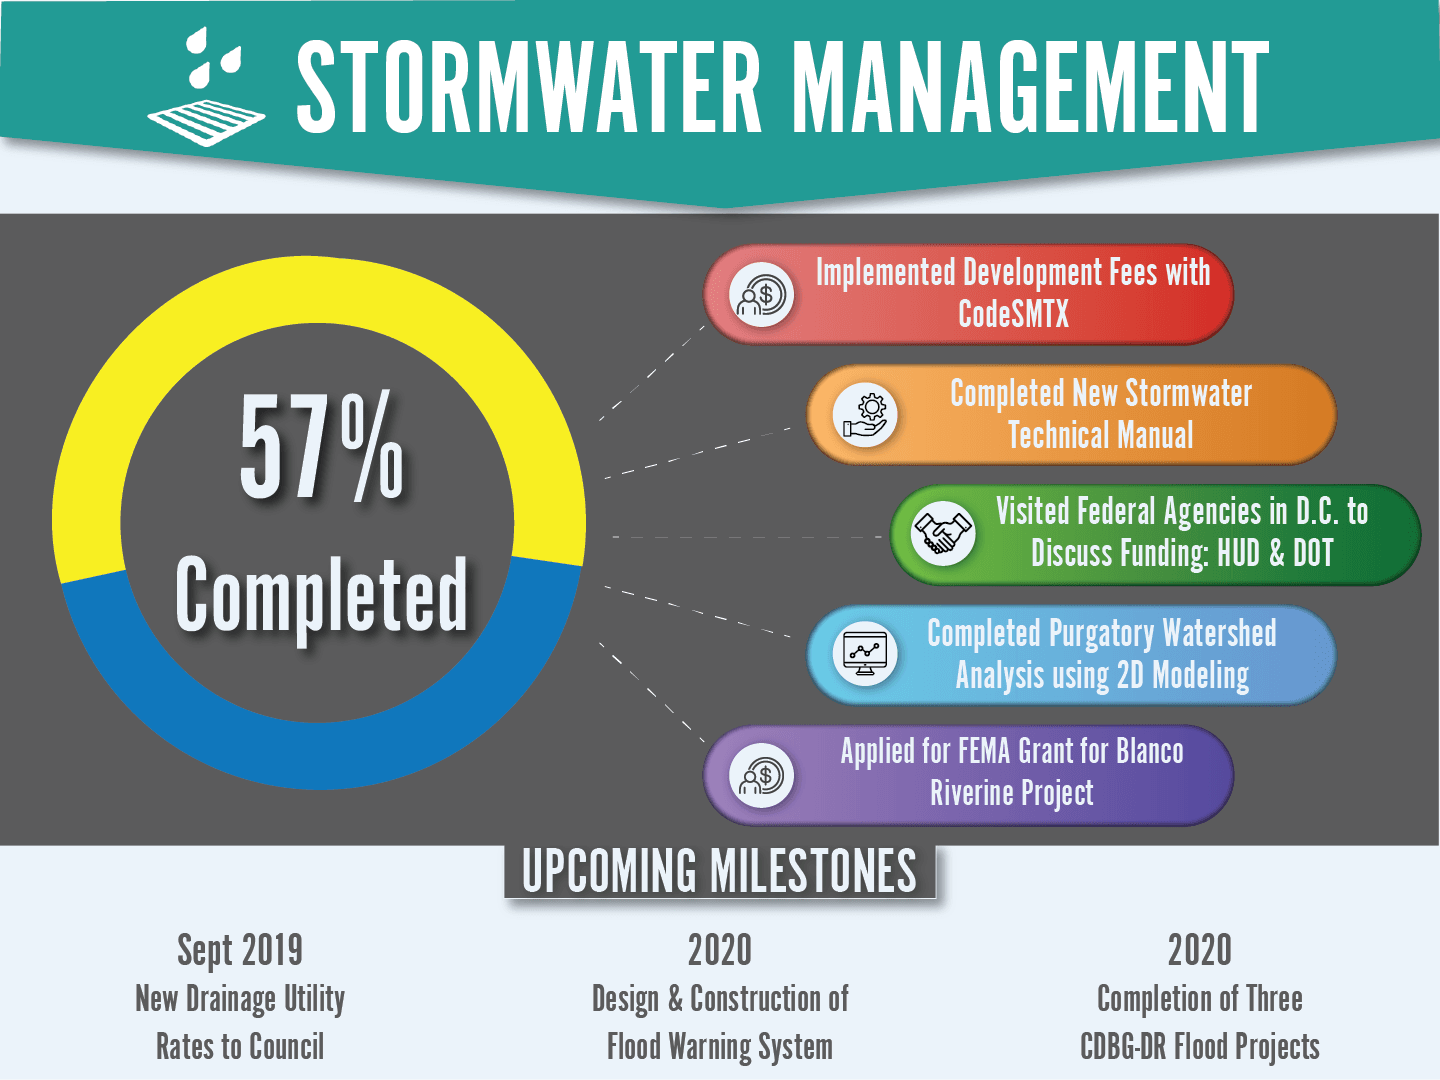 Stormwater Management Dashboard showing a 57% Completion Rate